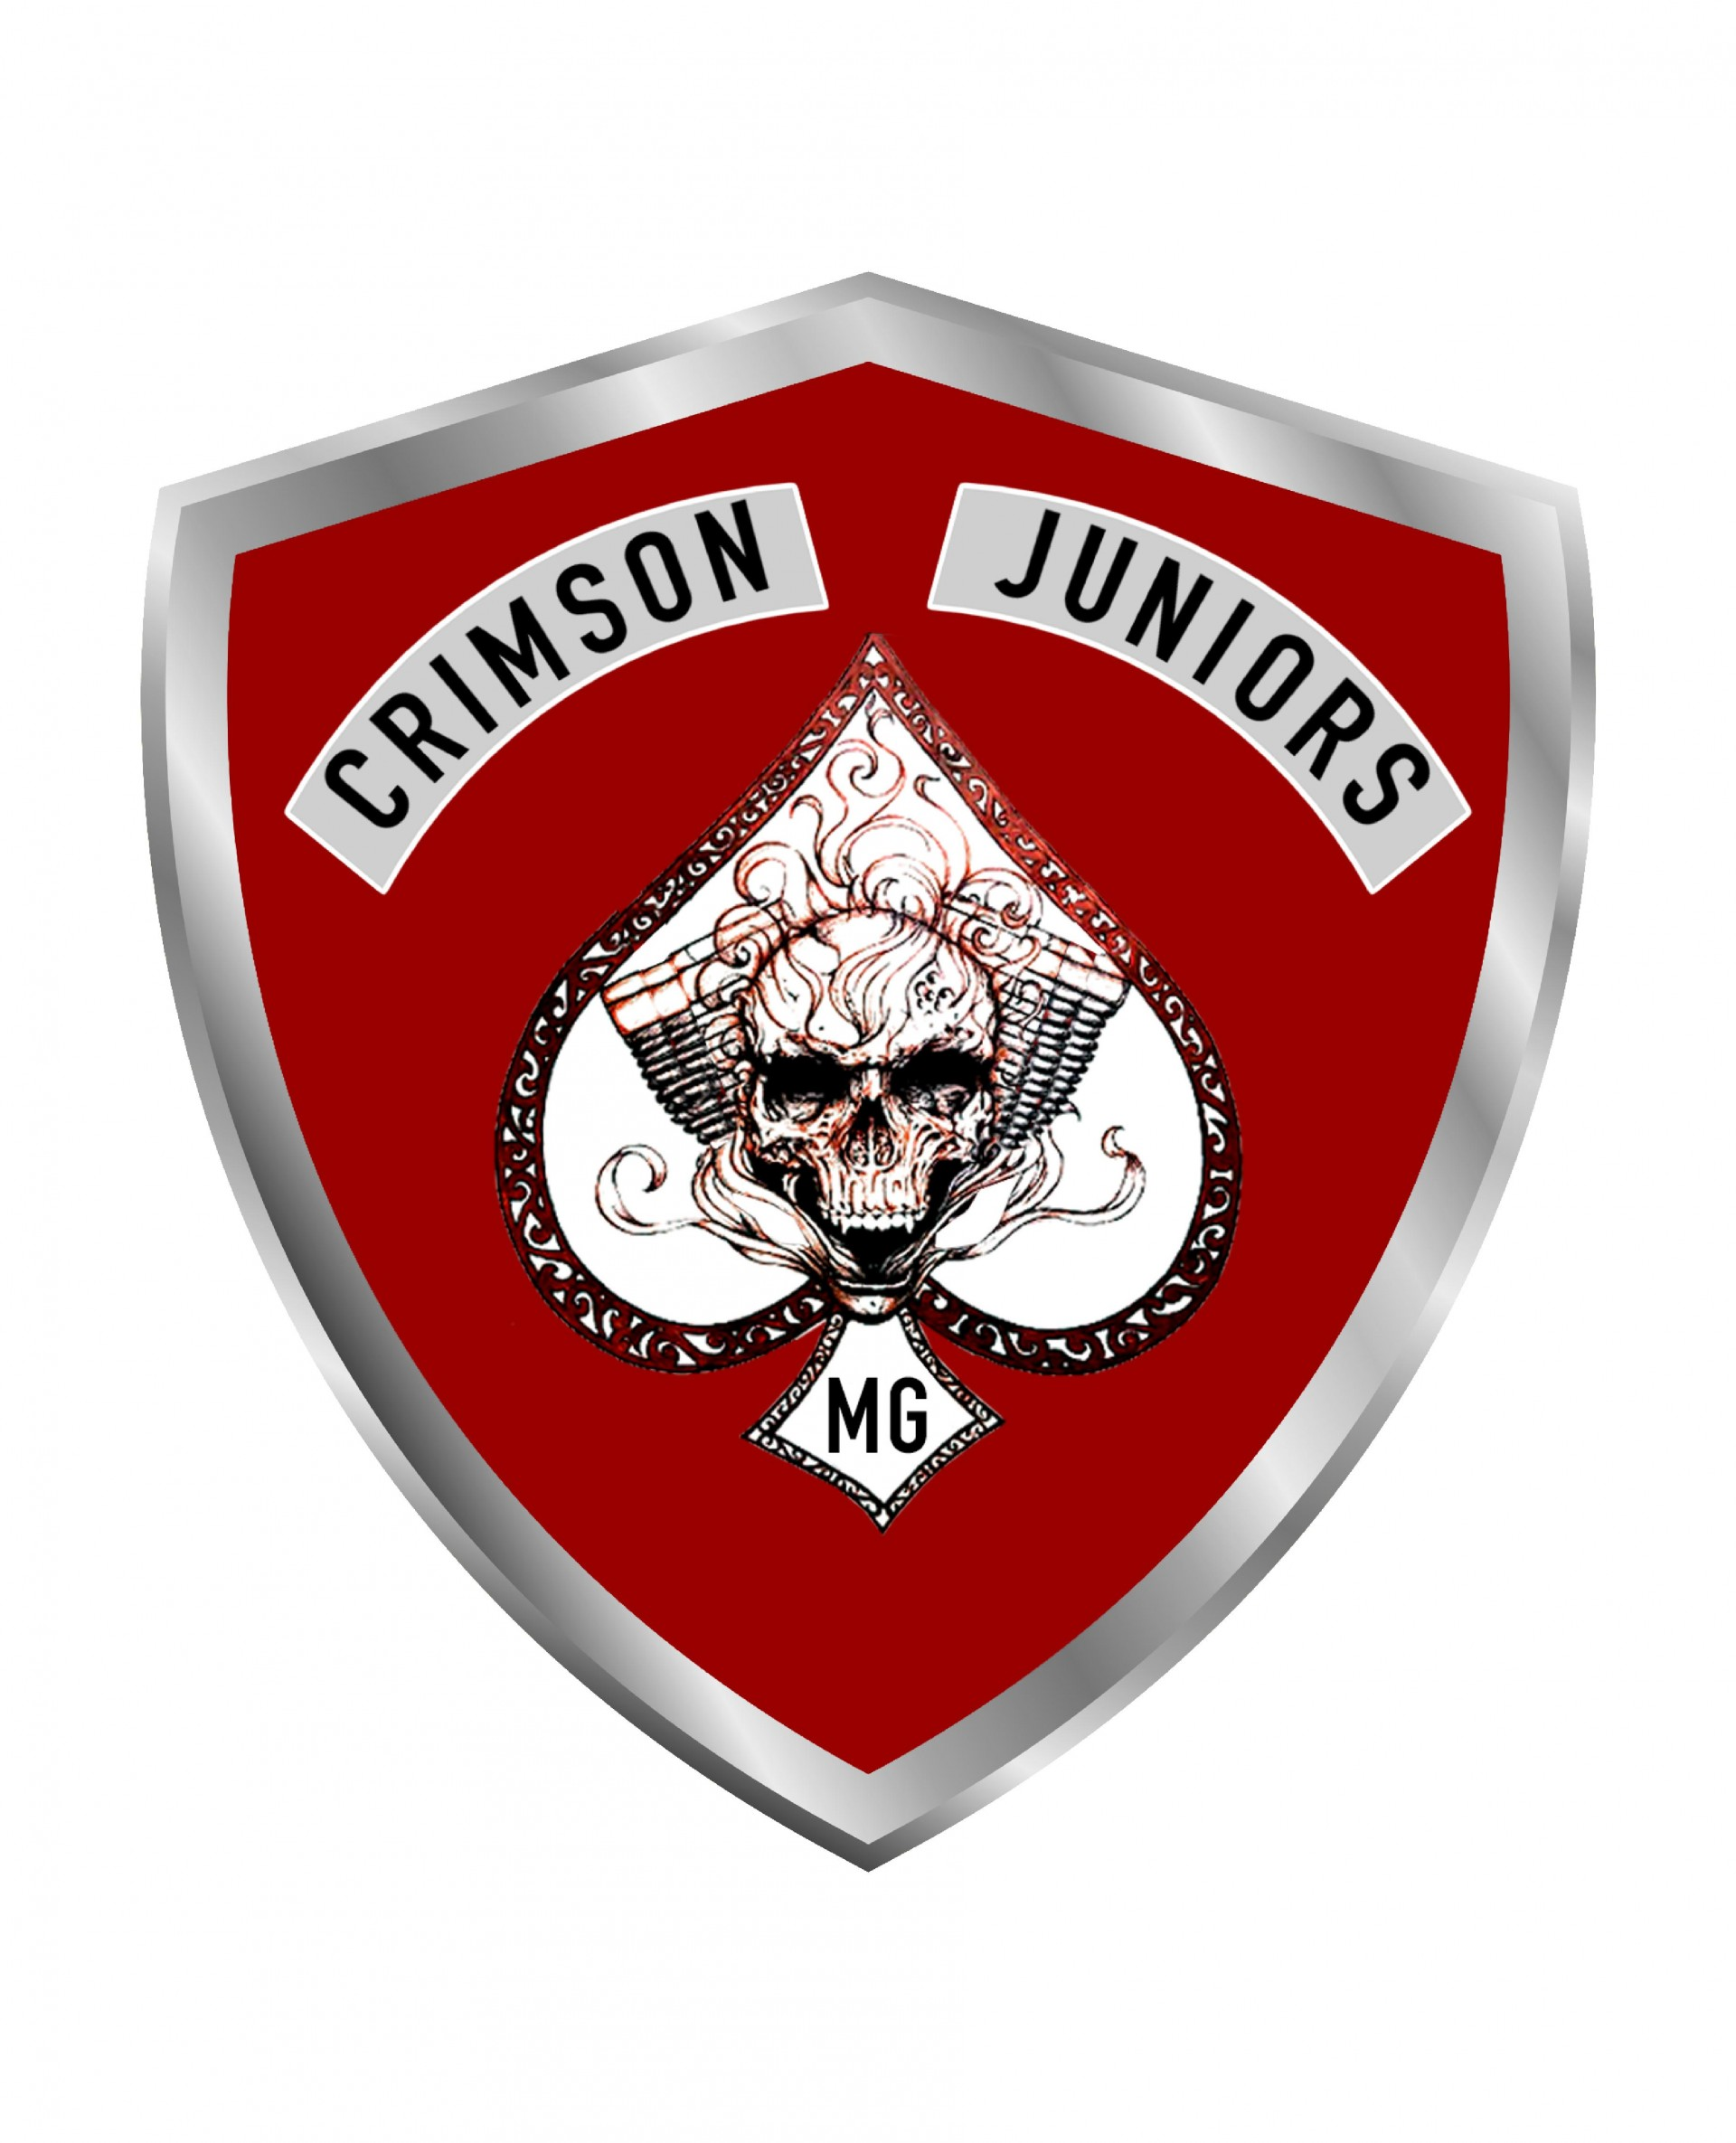 Crimson Juniors logo